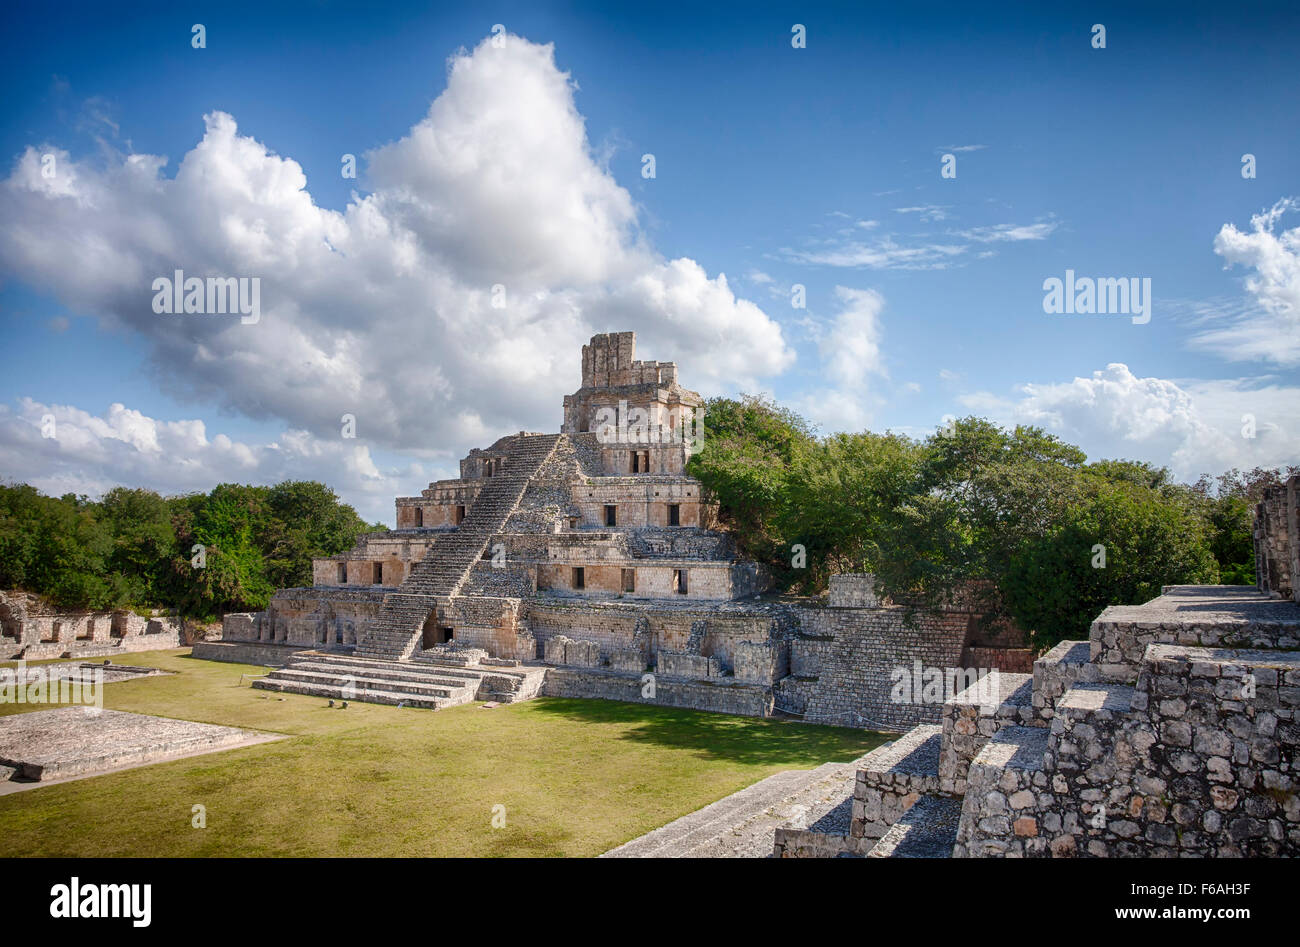 The Five Story Pyramid at the Mayan ruins of Edzna, Campeche, Mexico. Stock Photo